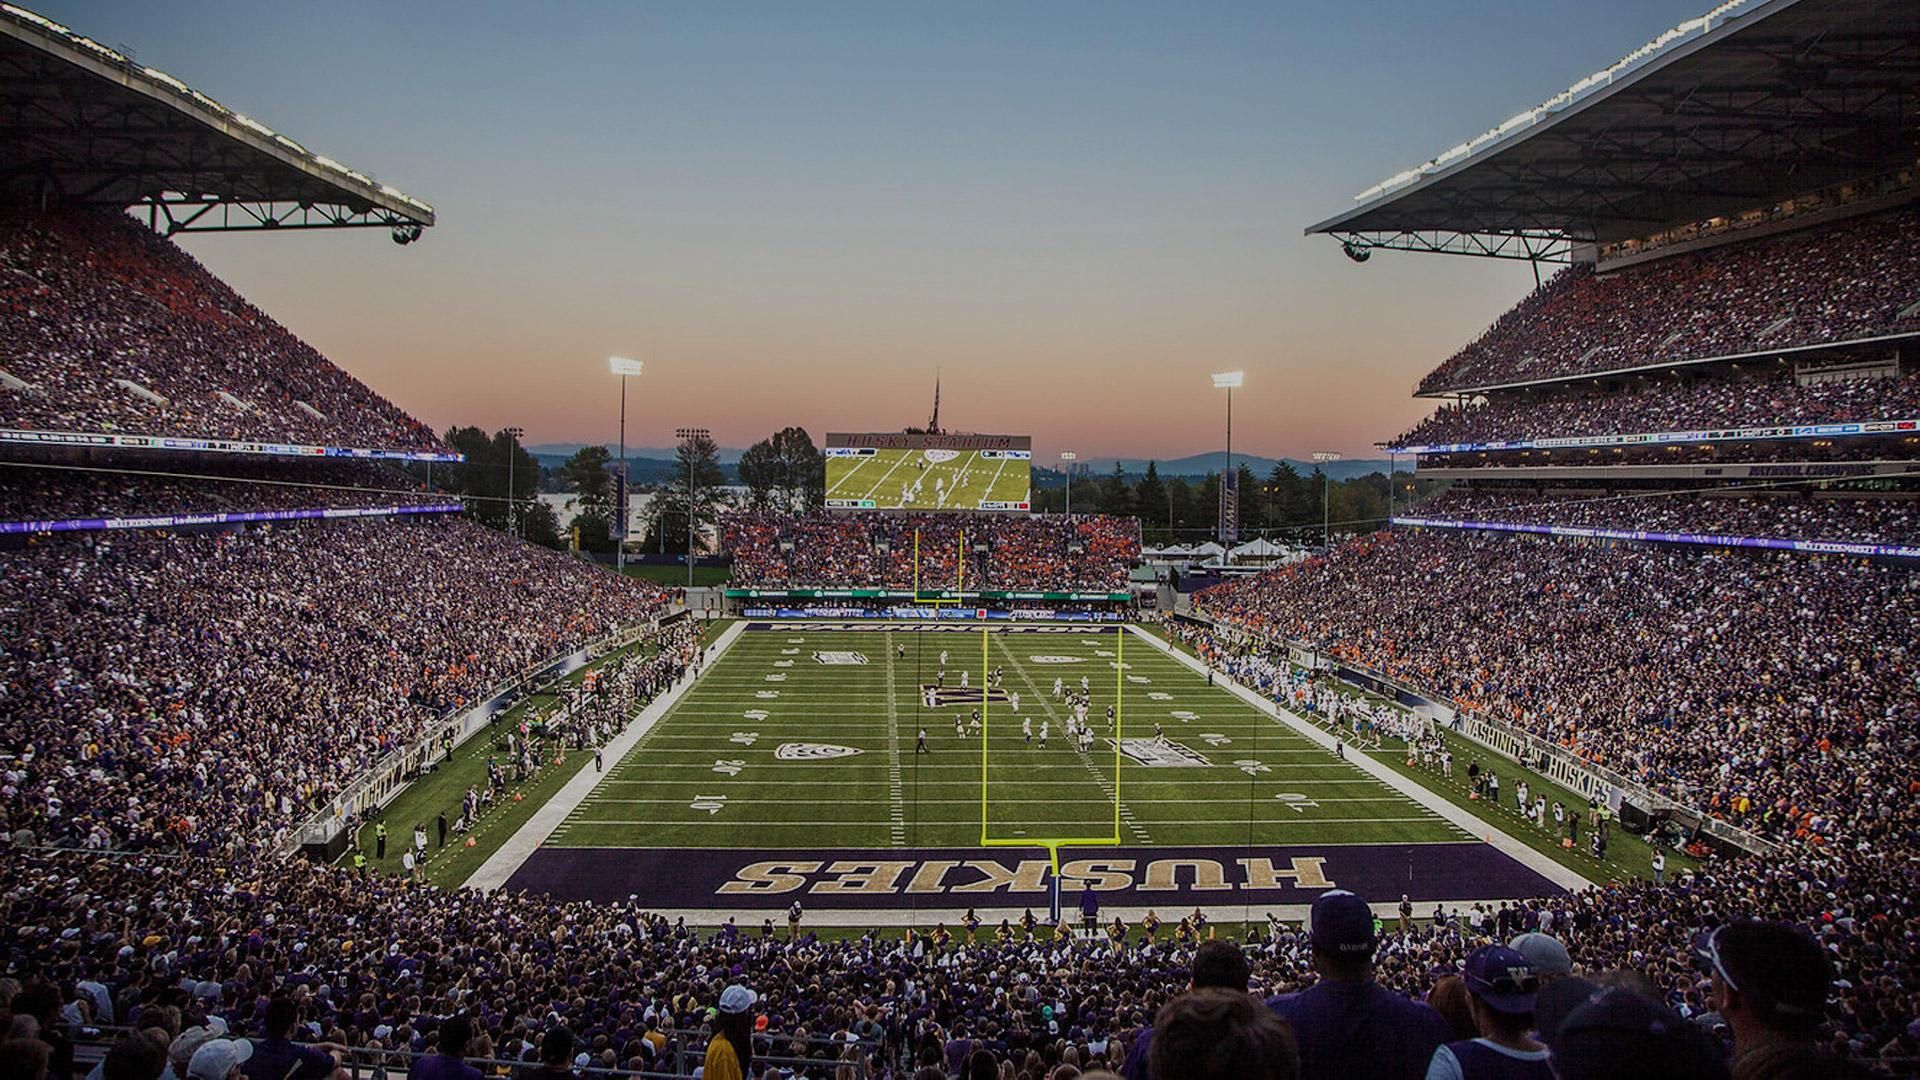 Hey, Husky Superfans: Send Us Your Fan Photos For a Chance to Win a $200 Gift Card!